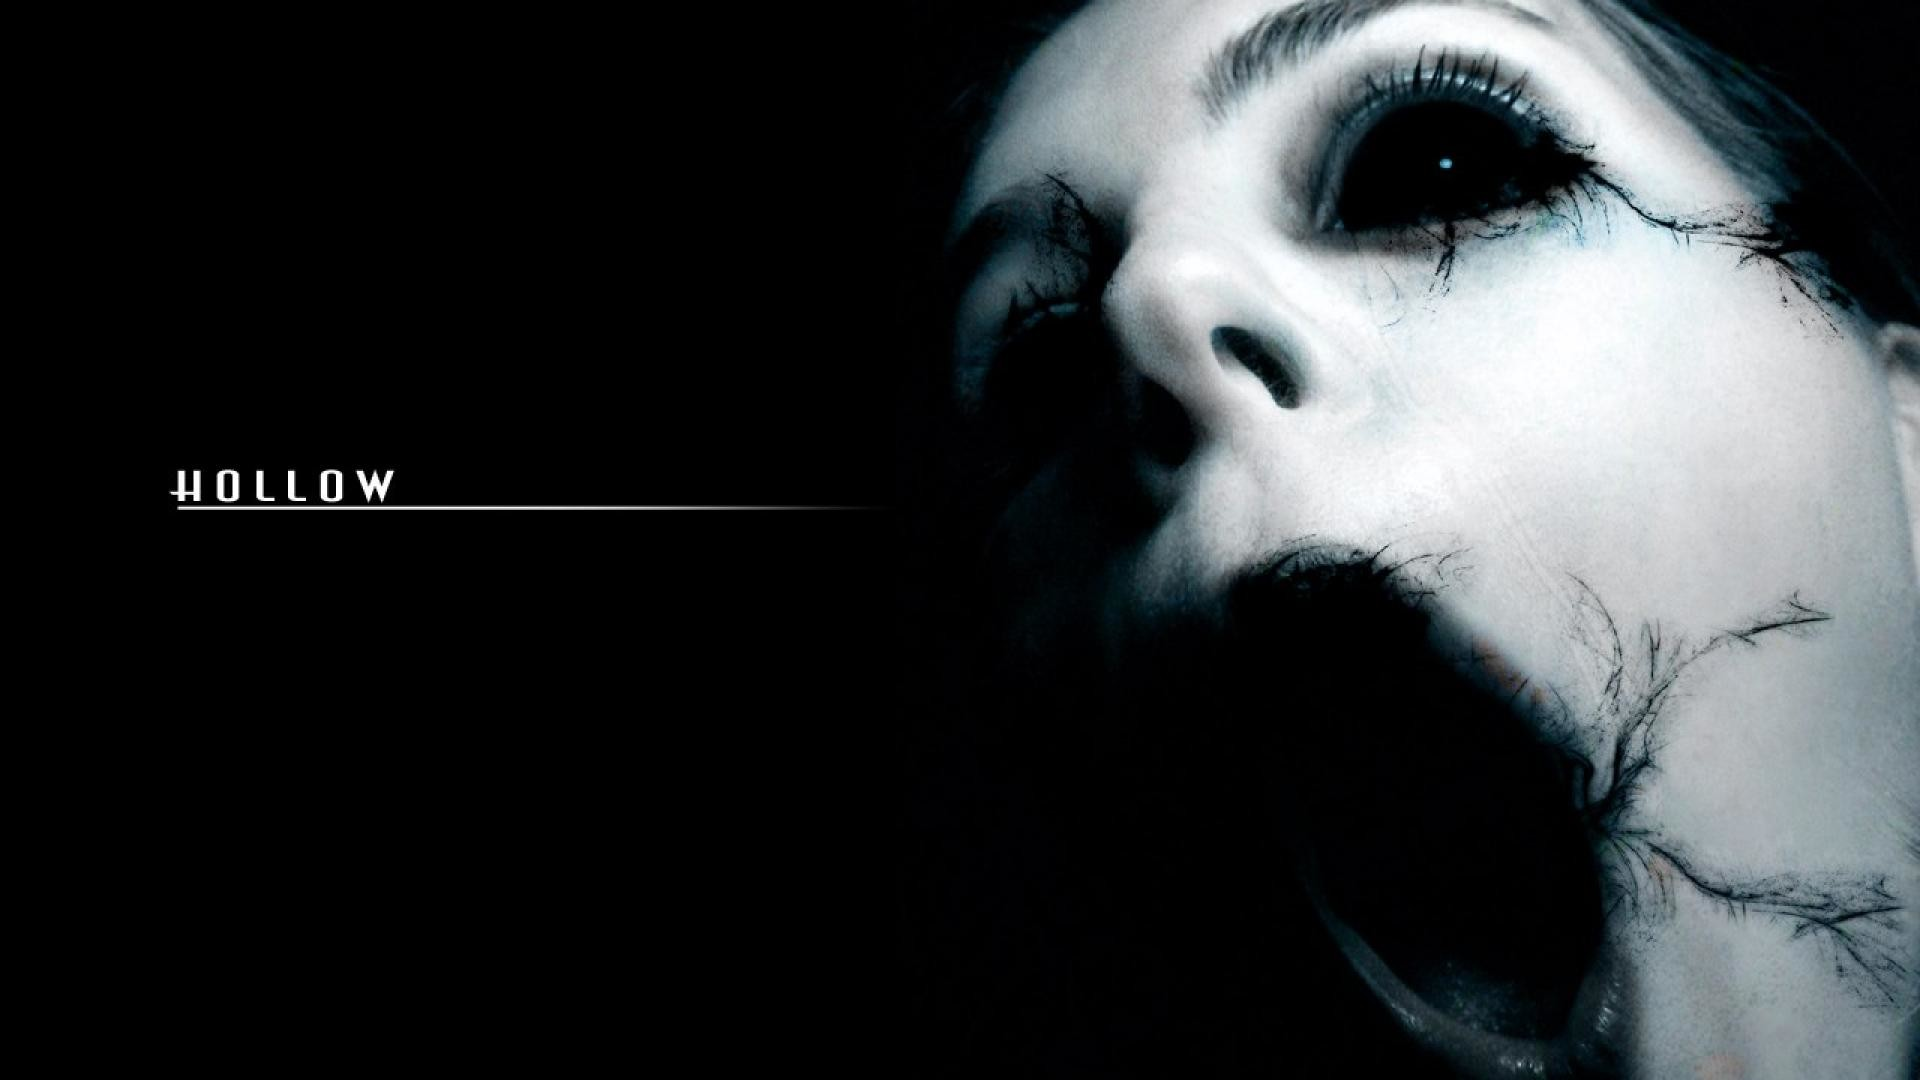 Horror Movie Wallpapers Wallpapertag: Scary Desktop Backgrounds ·① WallpaperTag